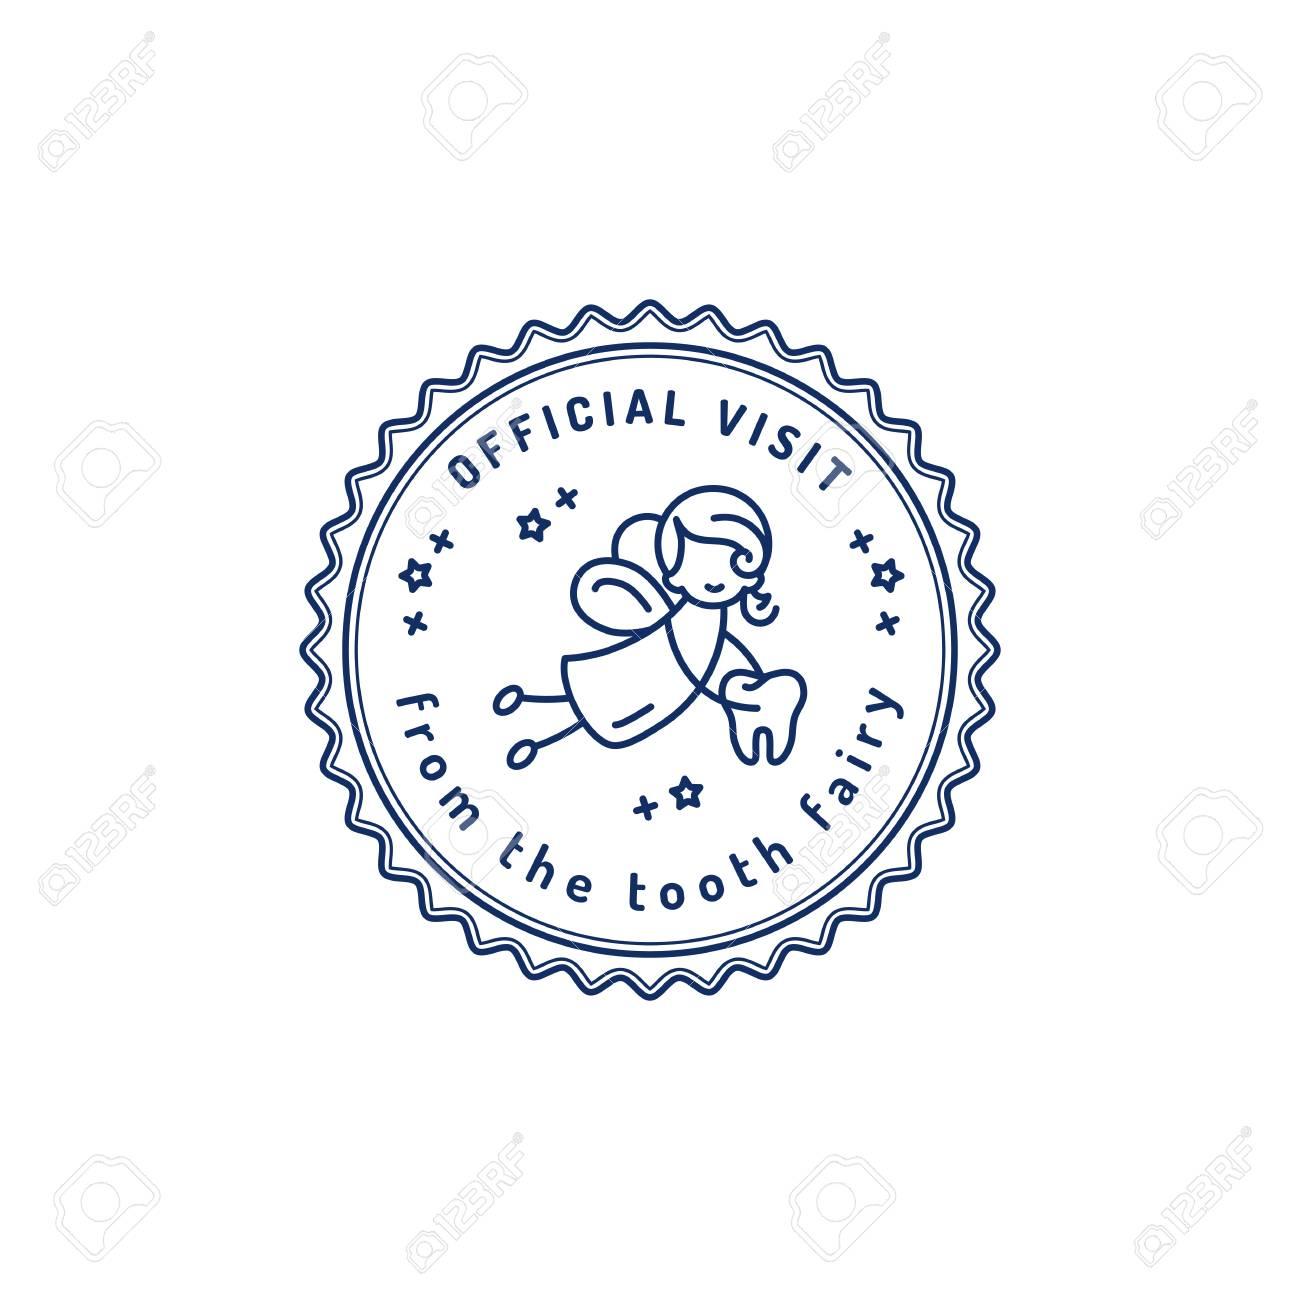 image regarding Free Printable Tooth Fairy Receipt known as Formal Check out Teeth Fairy, Childrens dentistry stamp icon, Teeth..